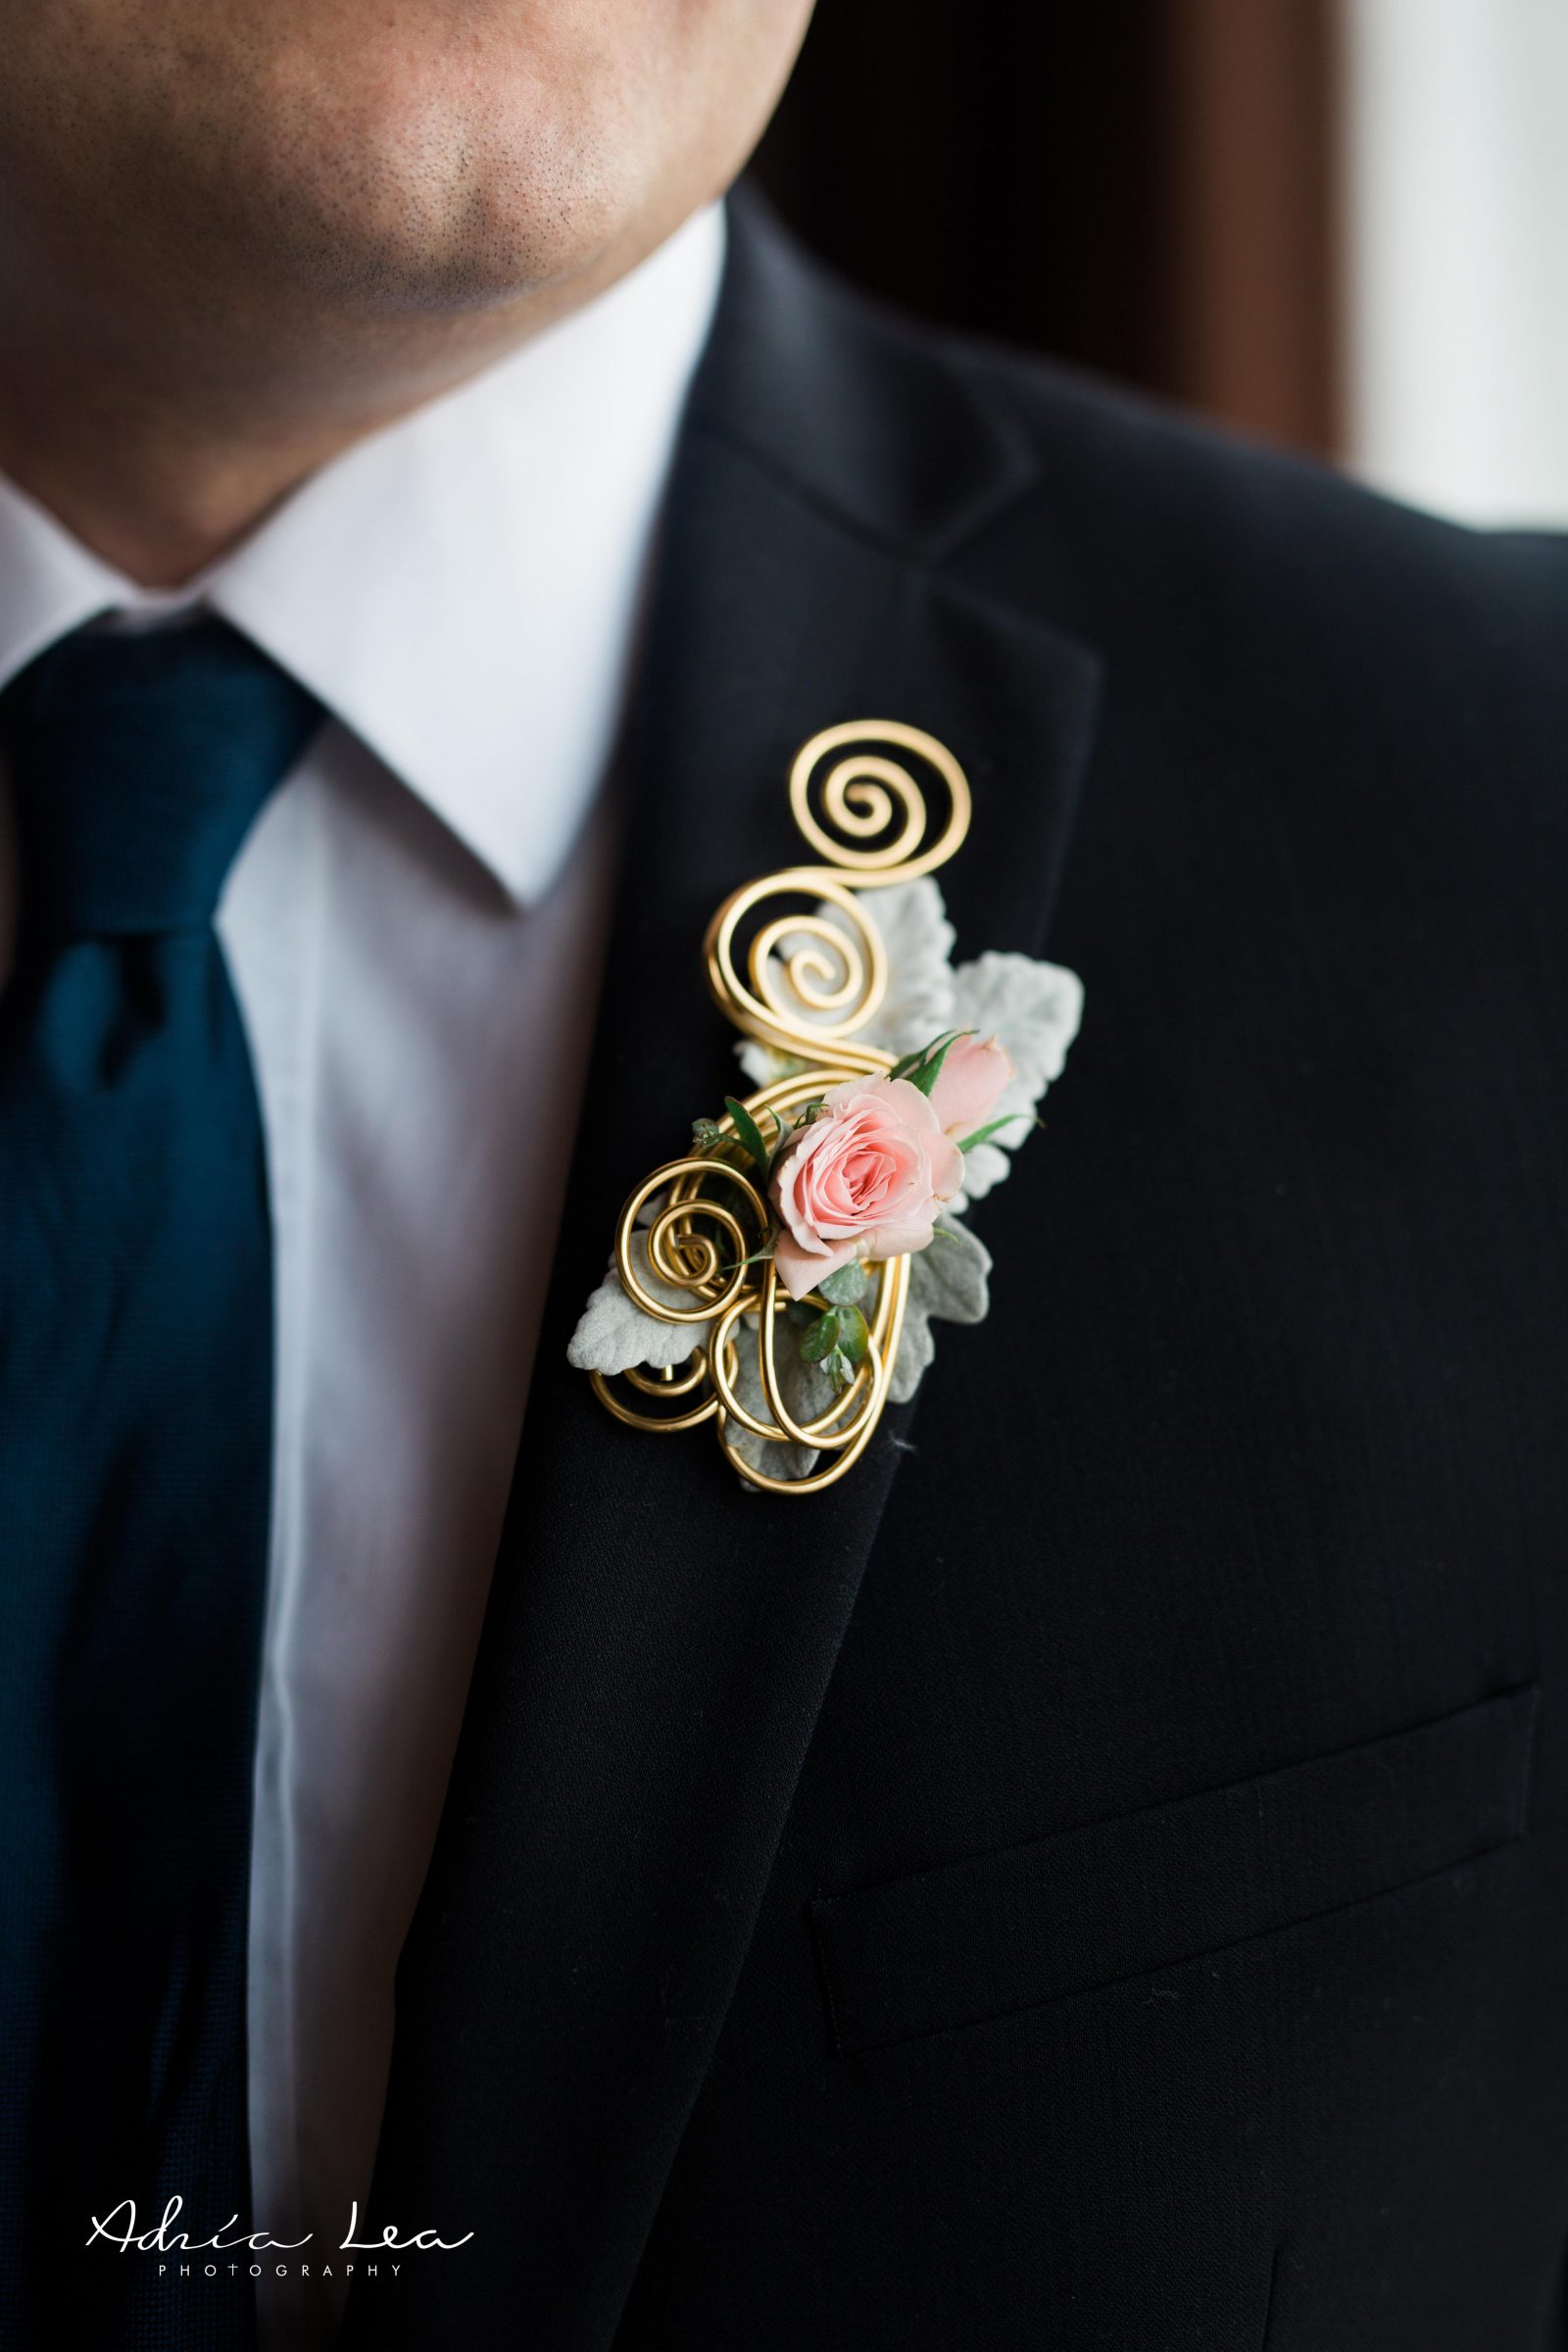 The Boutonnierre